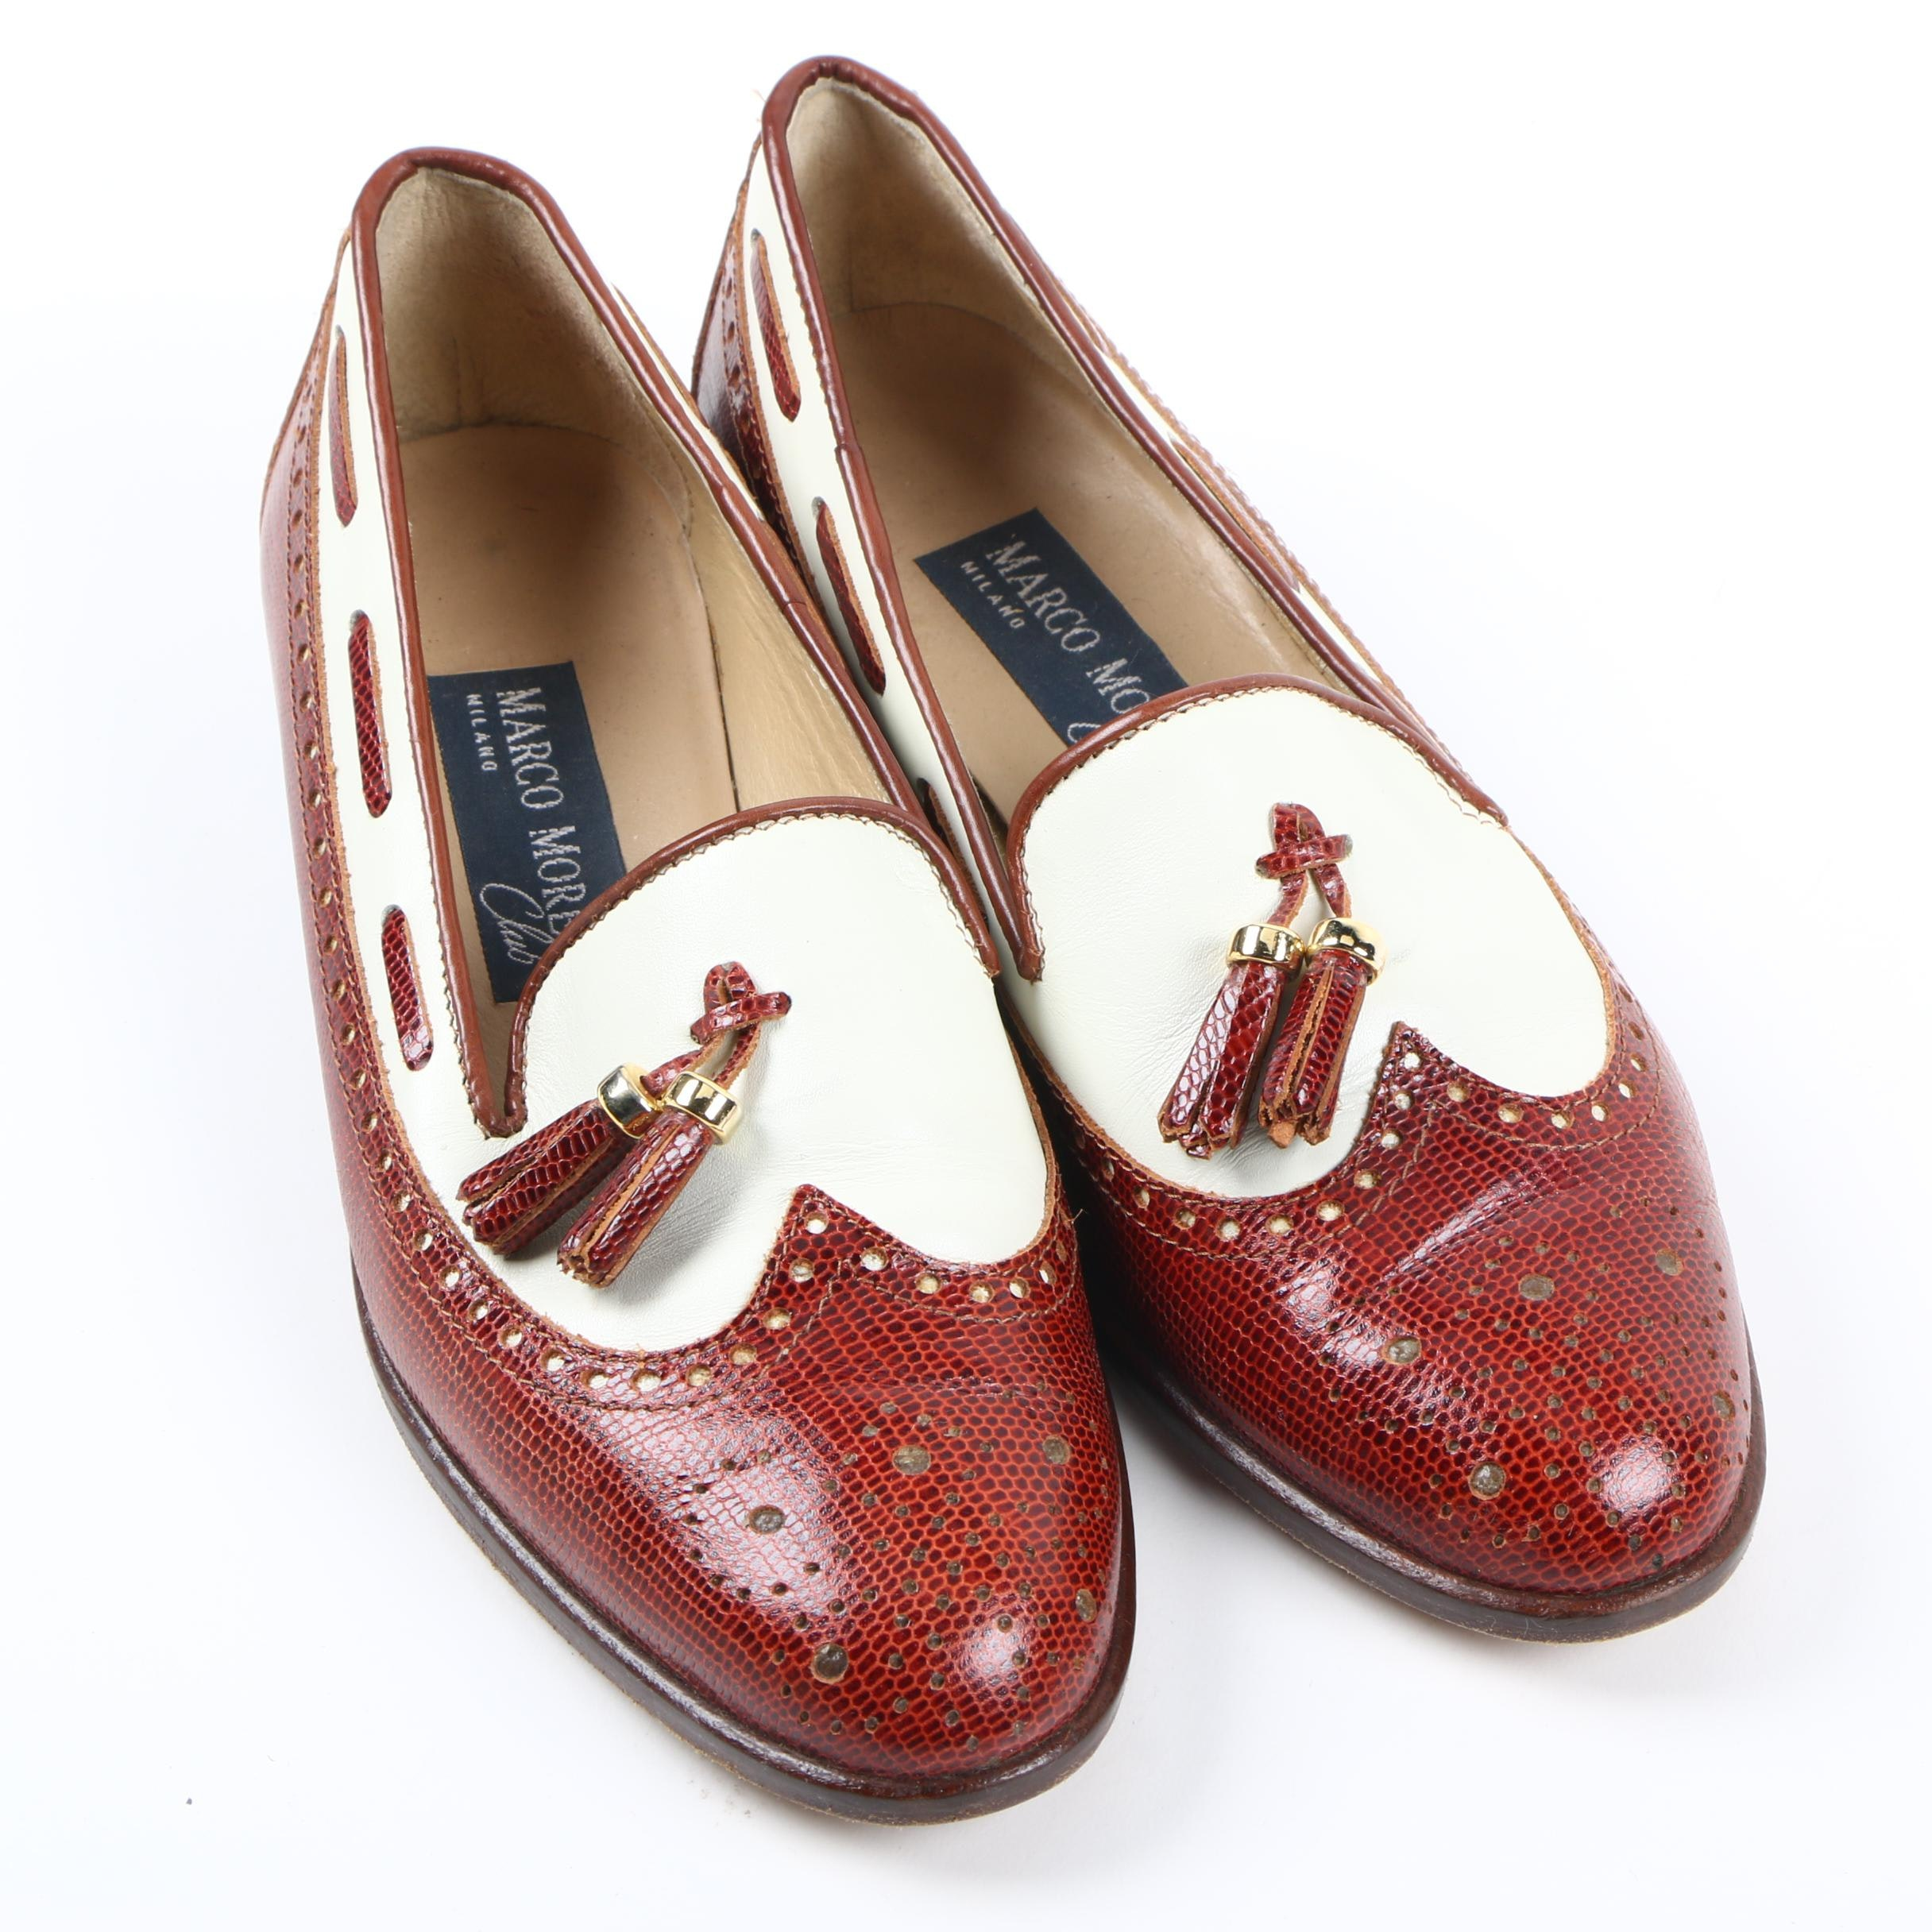 Women's Marco Moreo Club Lizard Skin Leather Loafers